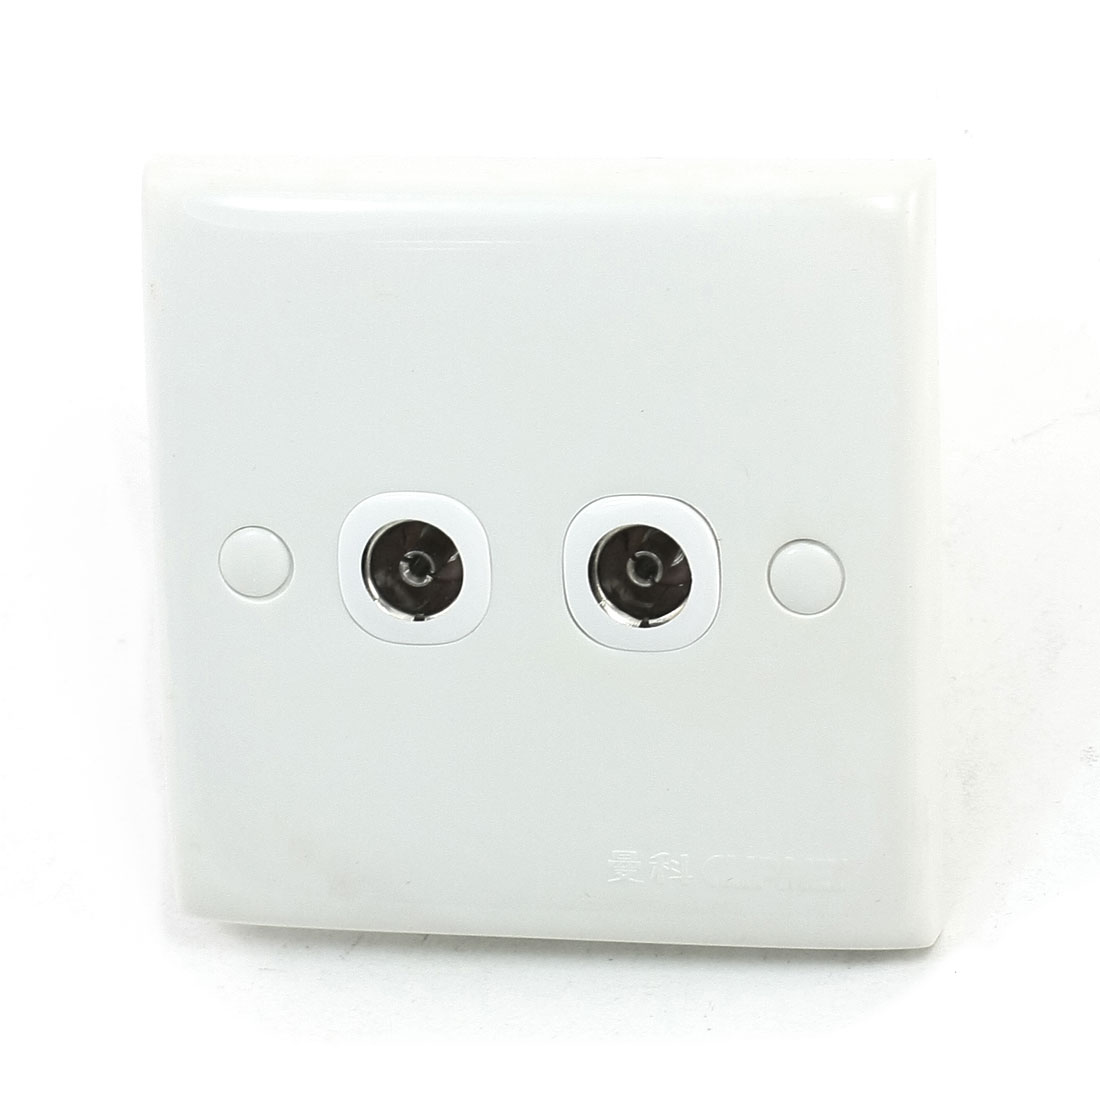 Bedroom PAL Female Jack TV Aerial Antenna 2 Outlet Socket Wall Plate